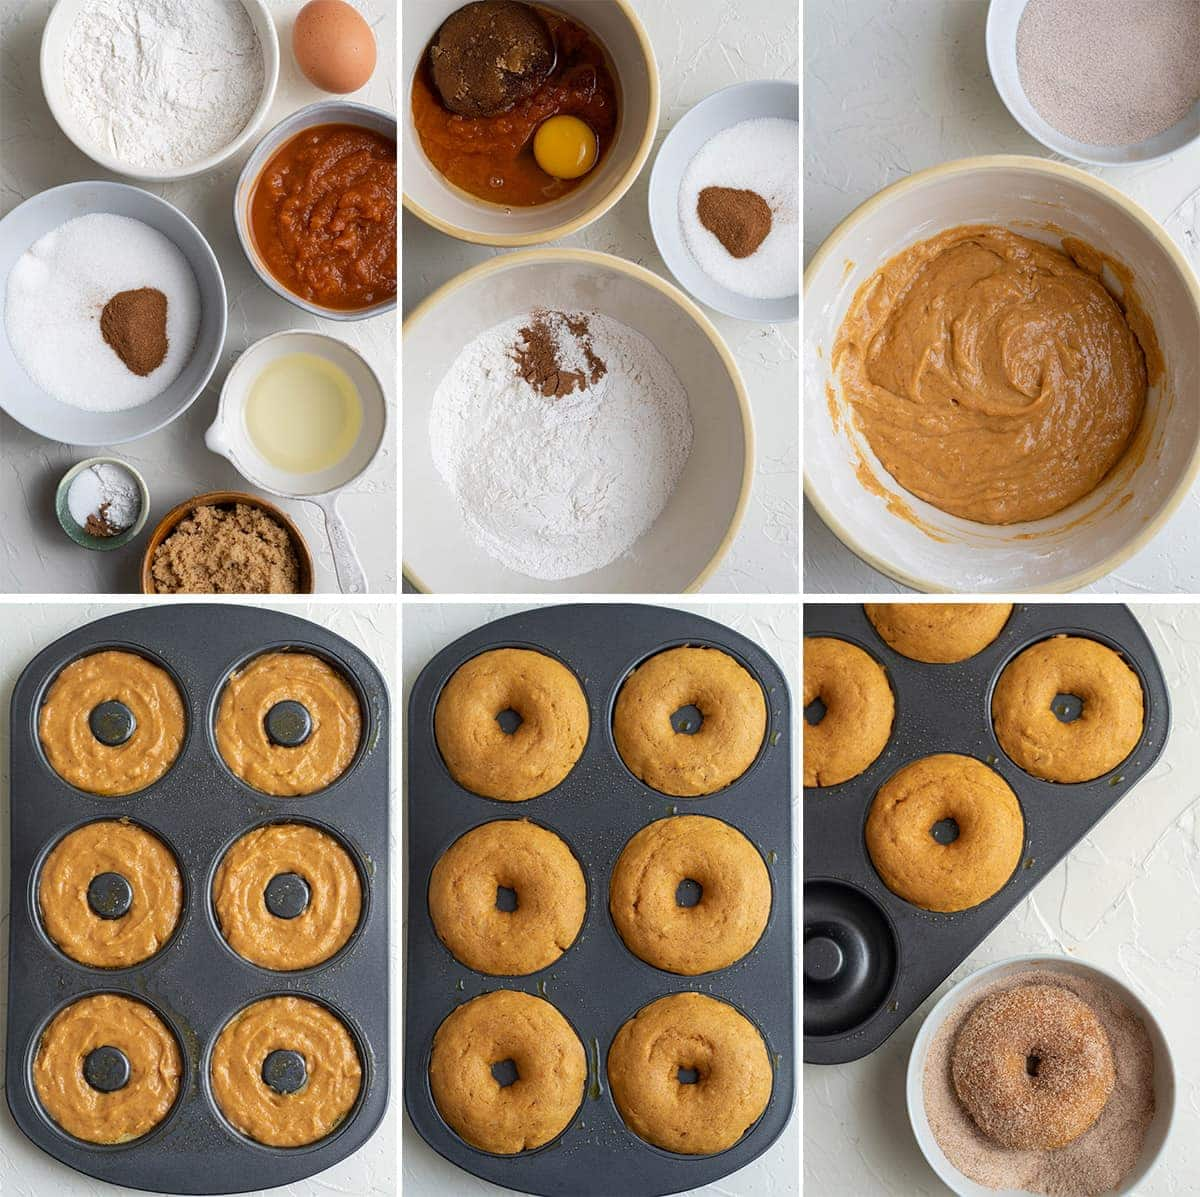 collage of images showing the process of making pumpkin donuts